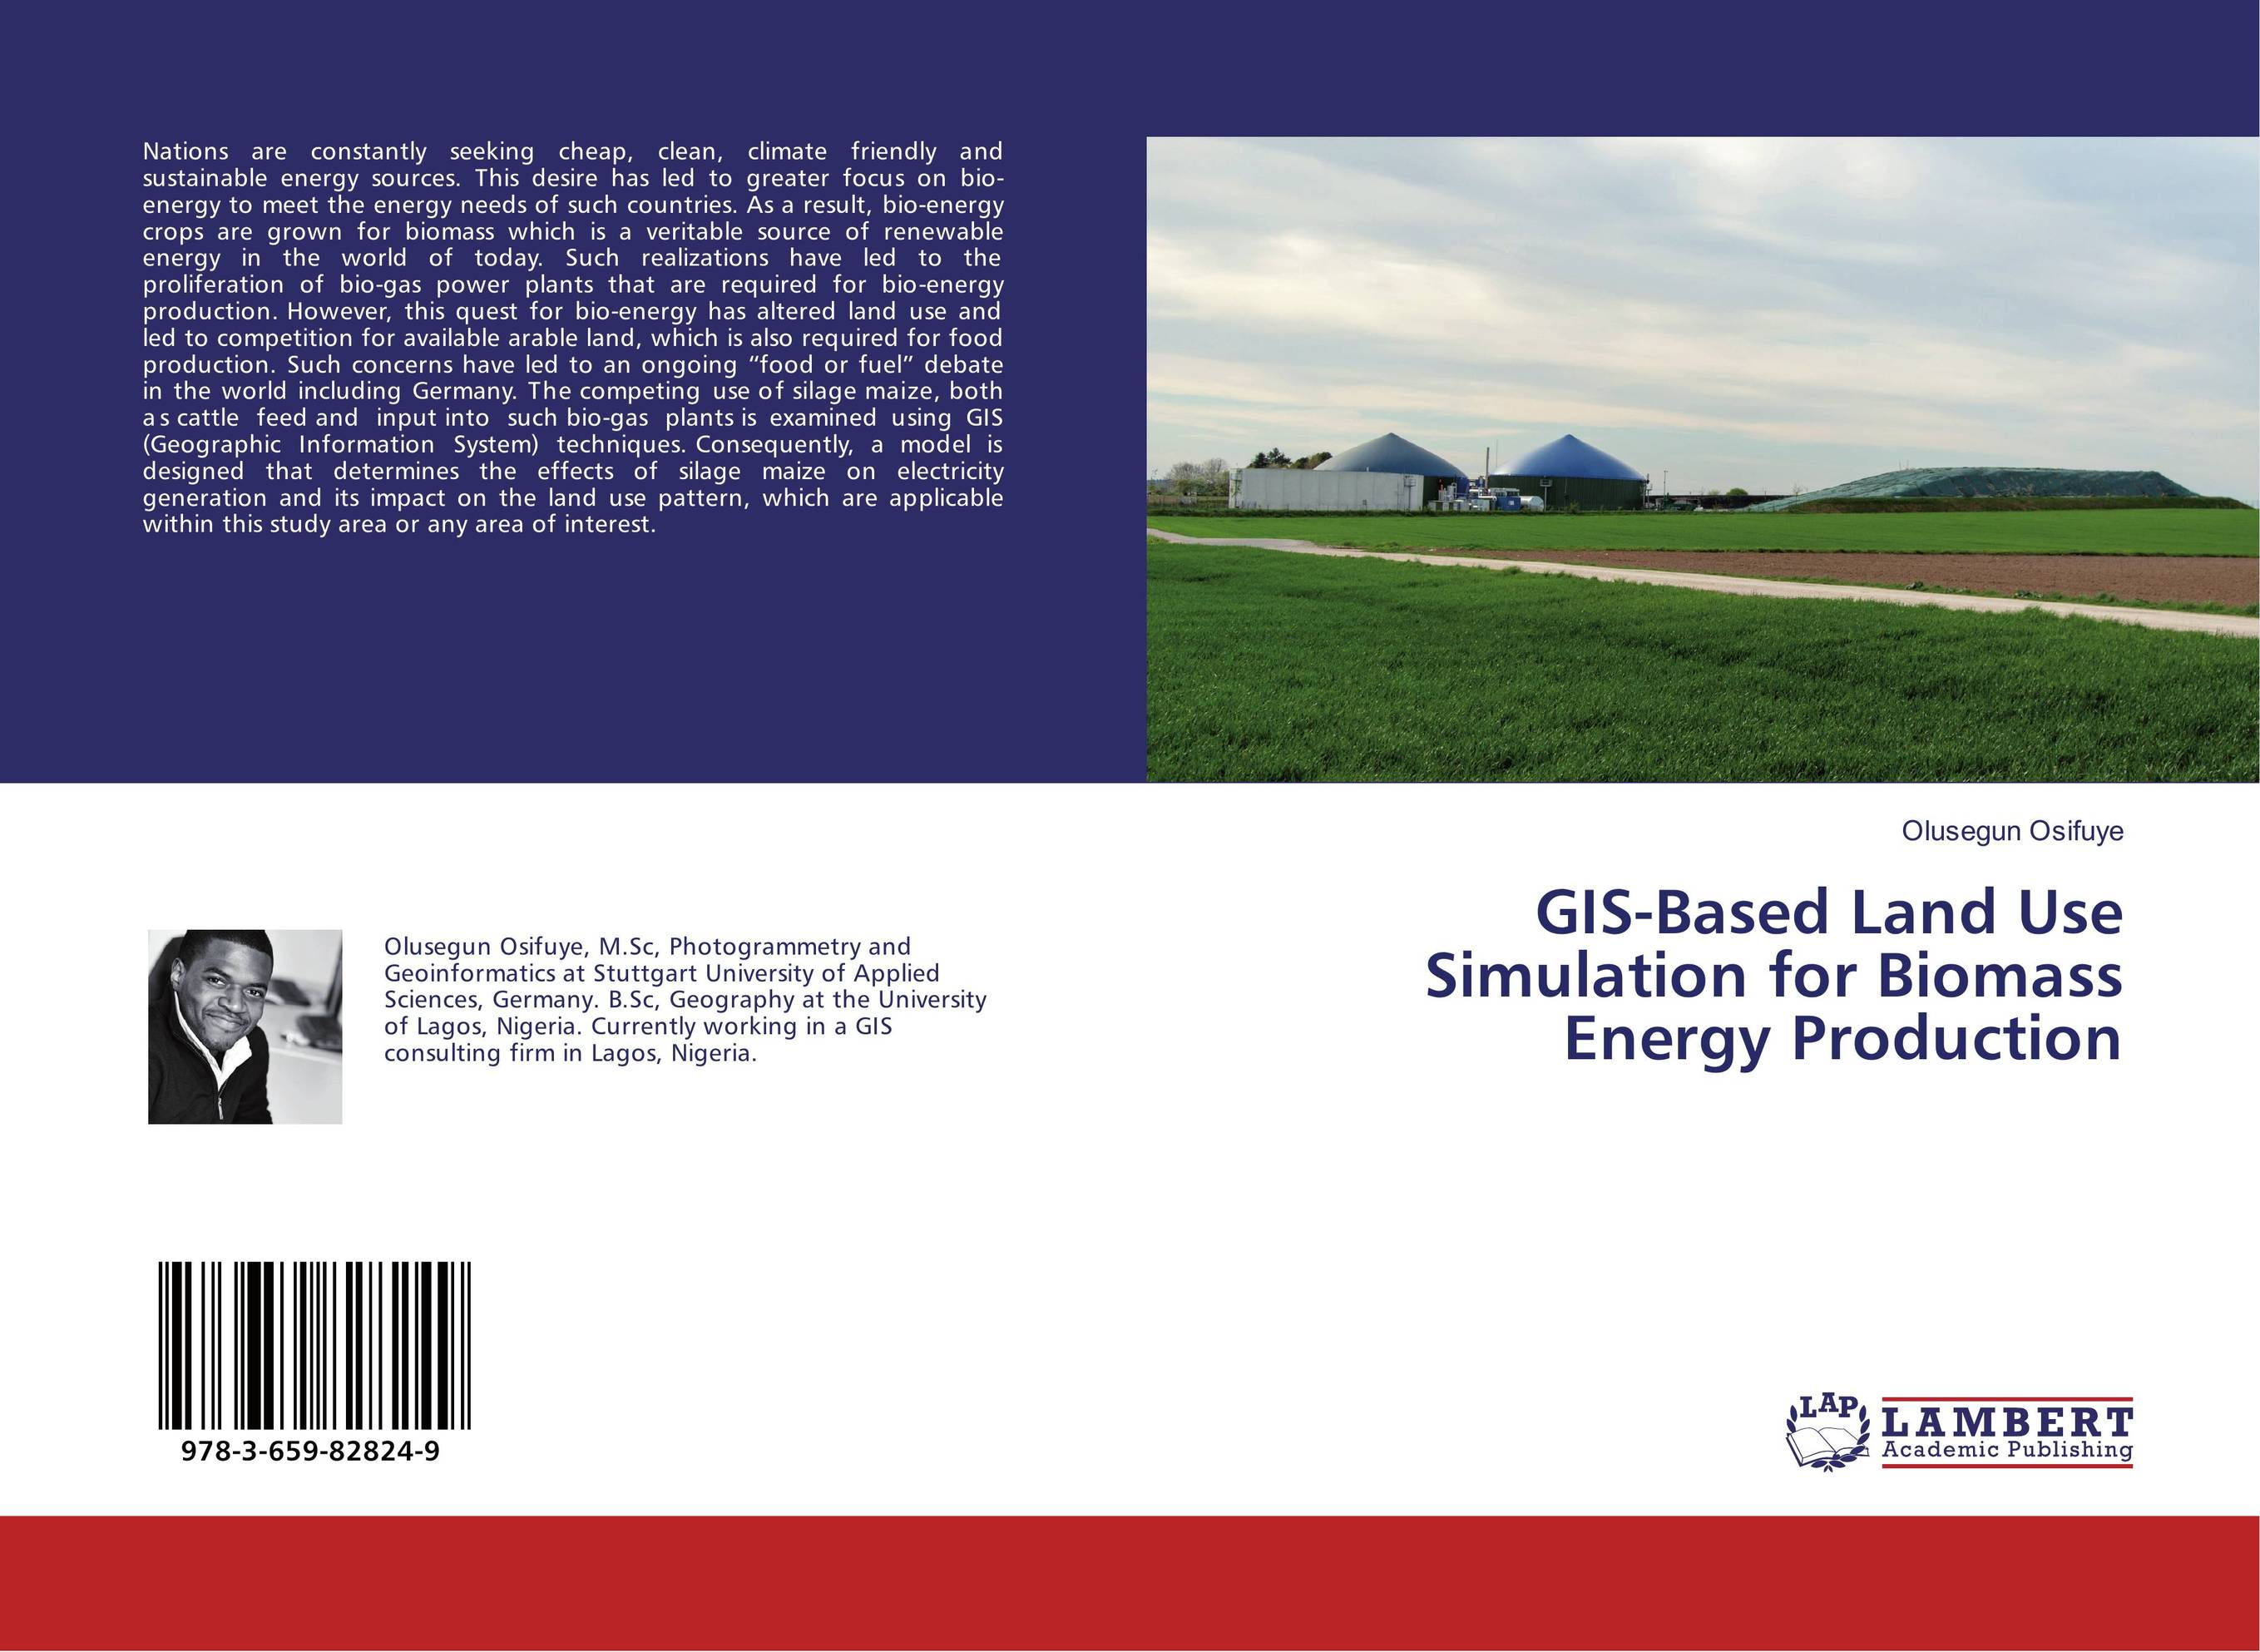 GIS-Based Land Use Simulation for Biomass Energy Production the valves are self acting i e they operate without the supply of auxiliary energy such as electricity or compressed air